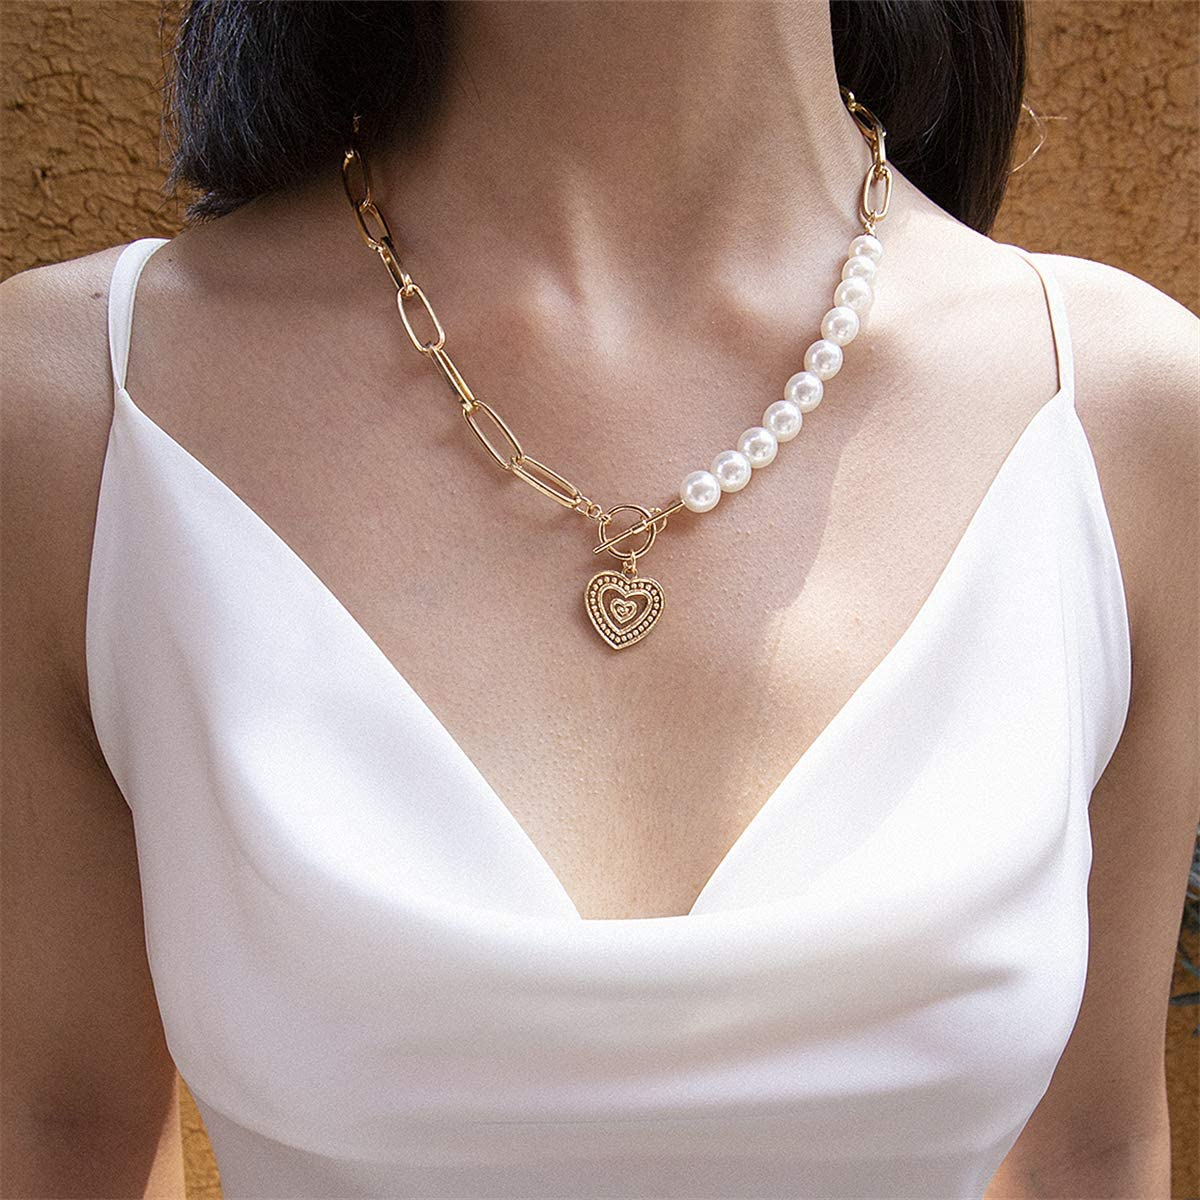 Ingemark Statement Cool Punk Chunky Chain Toggle Necklace for Women Girls Heart Shaped Photo Locket Pendant Layered Pearl Choker Necklace